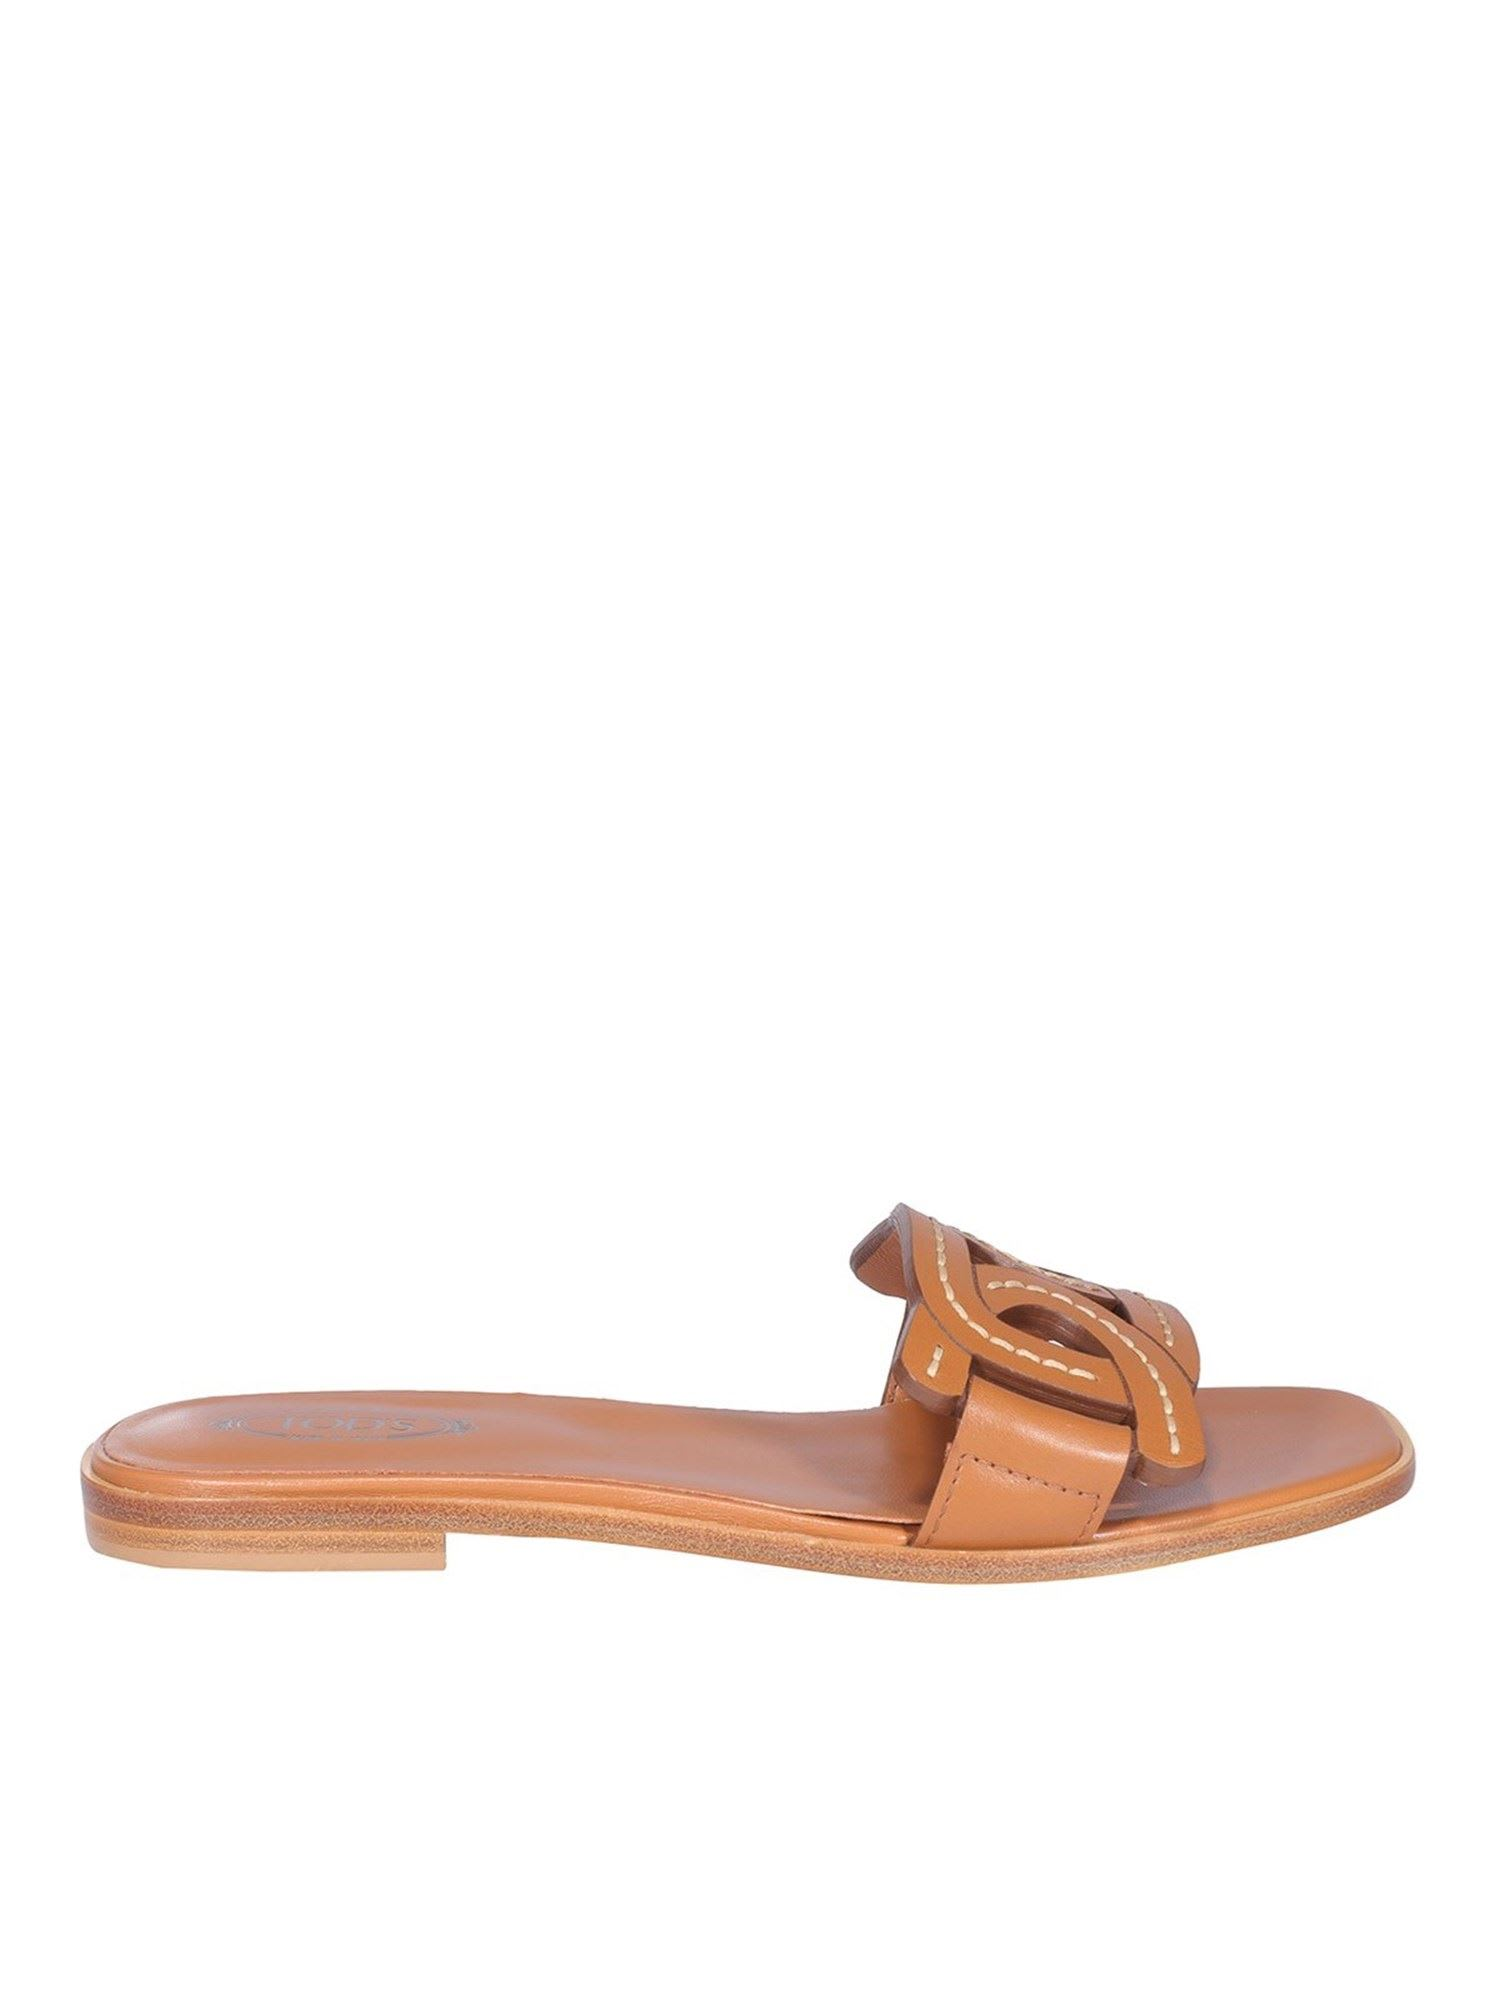 Tod's Leathers SANDALS